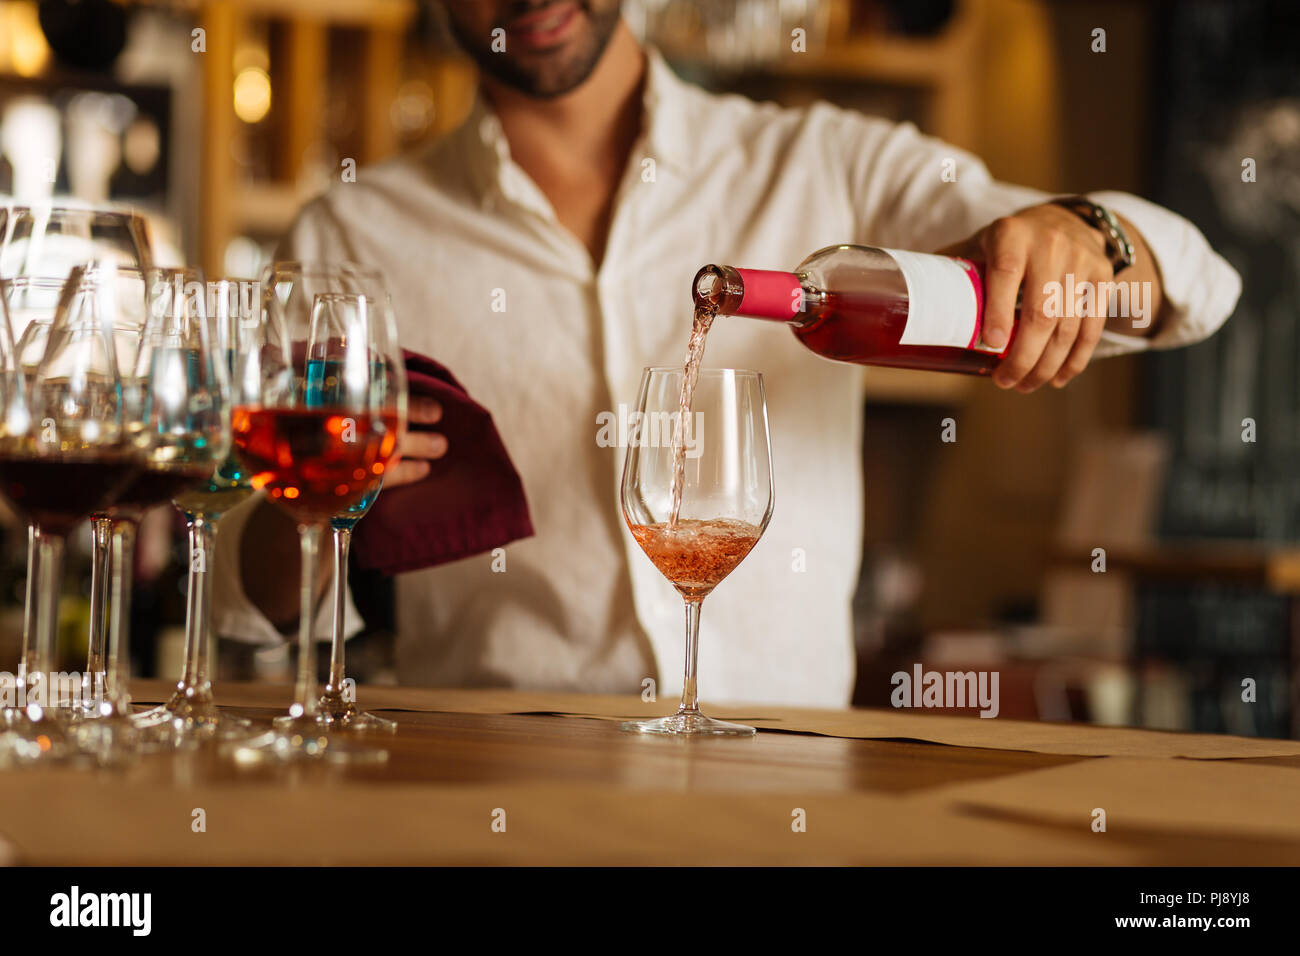 Rose wine being poured in the glass - Stock Image